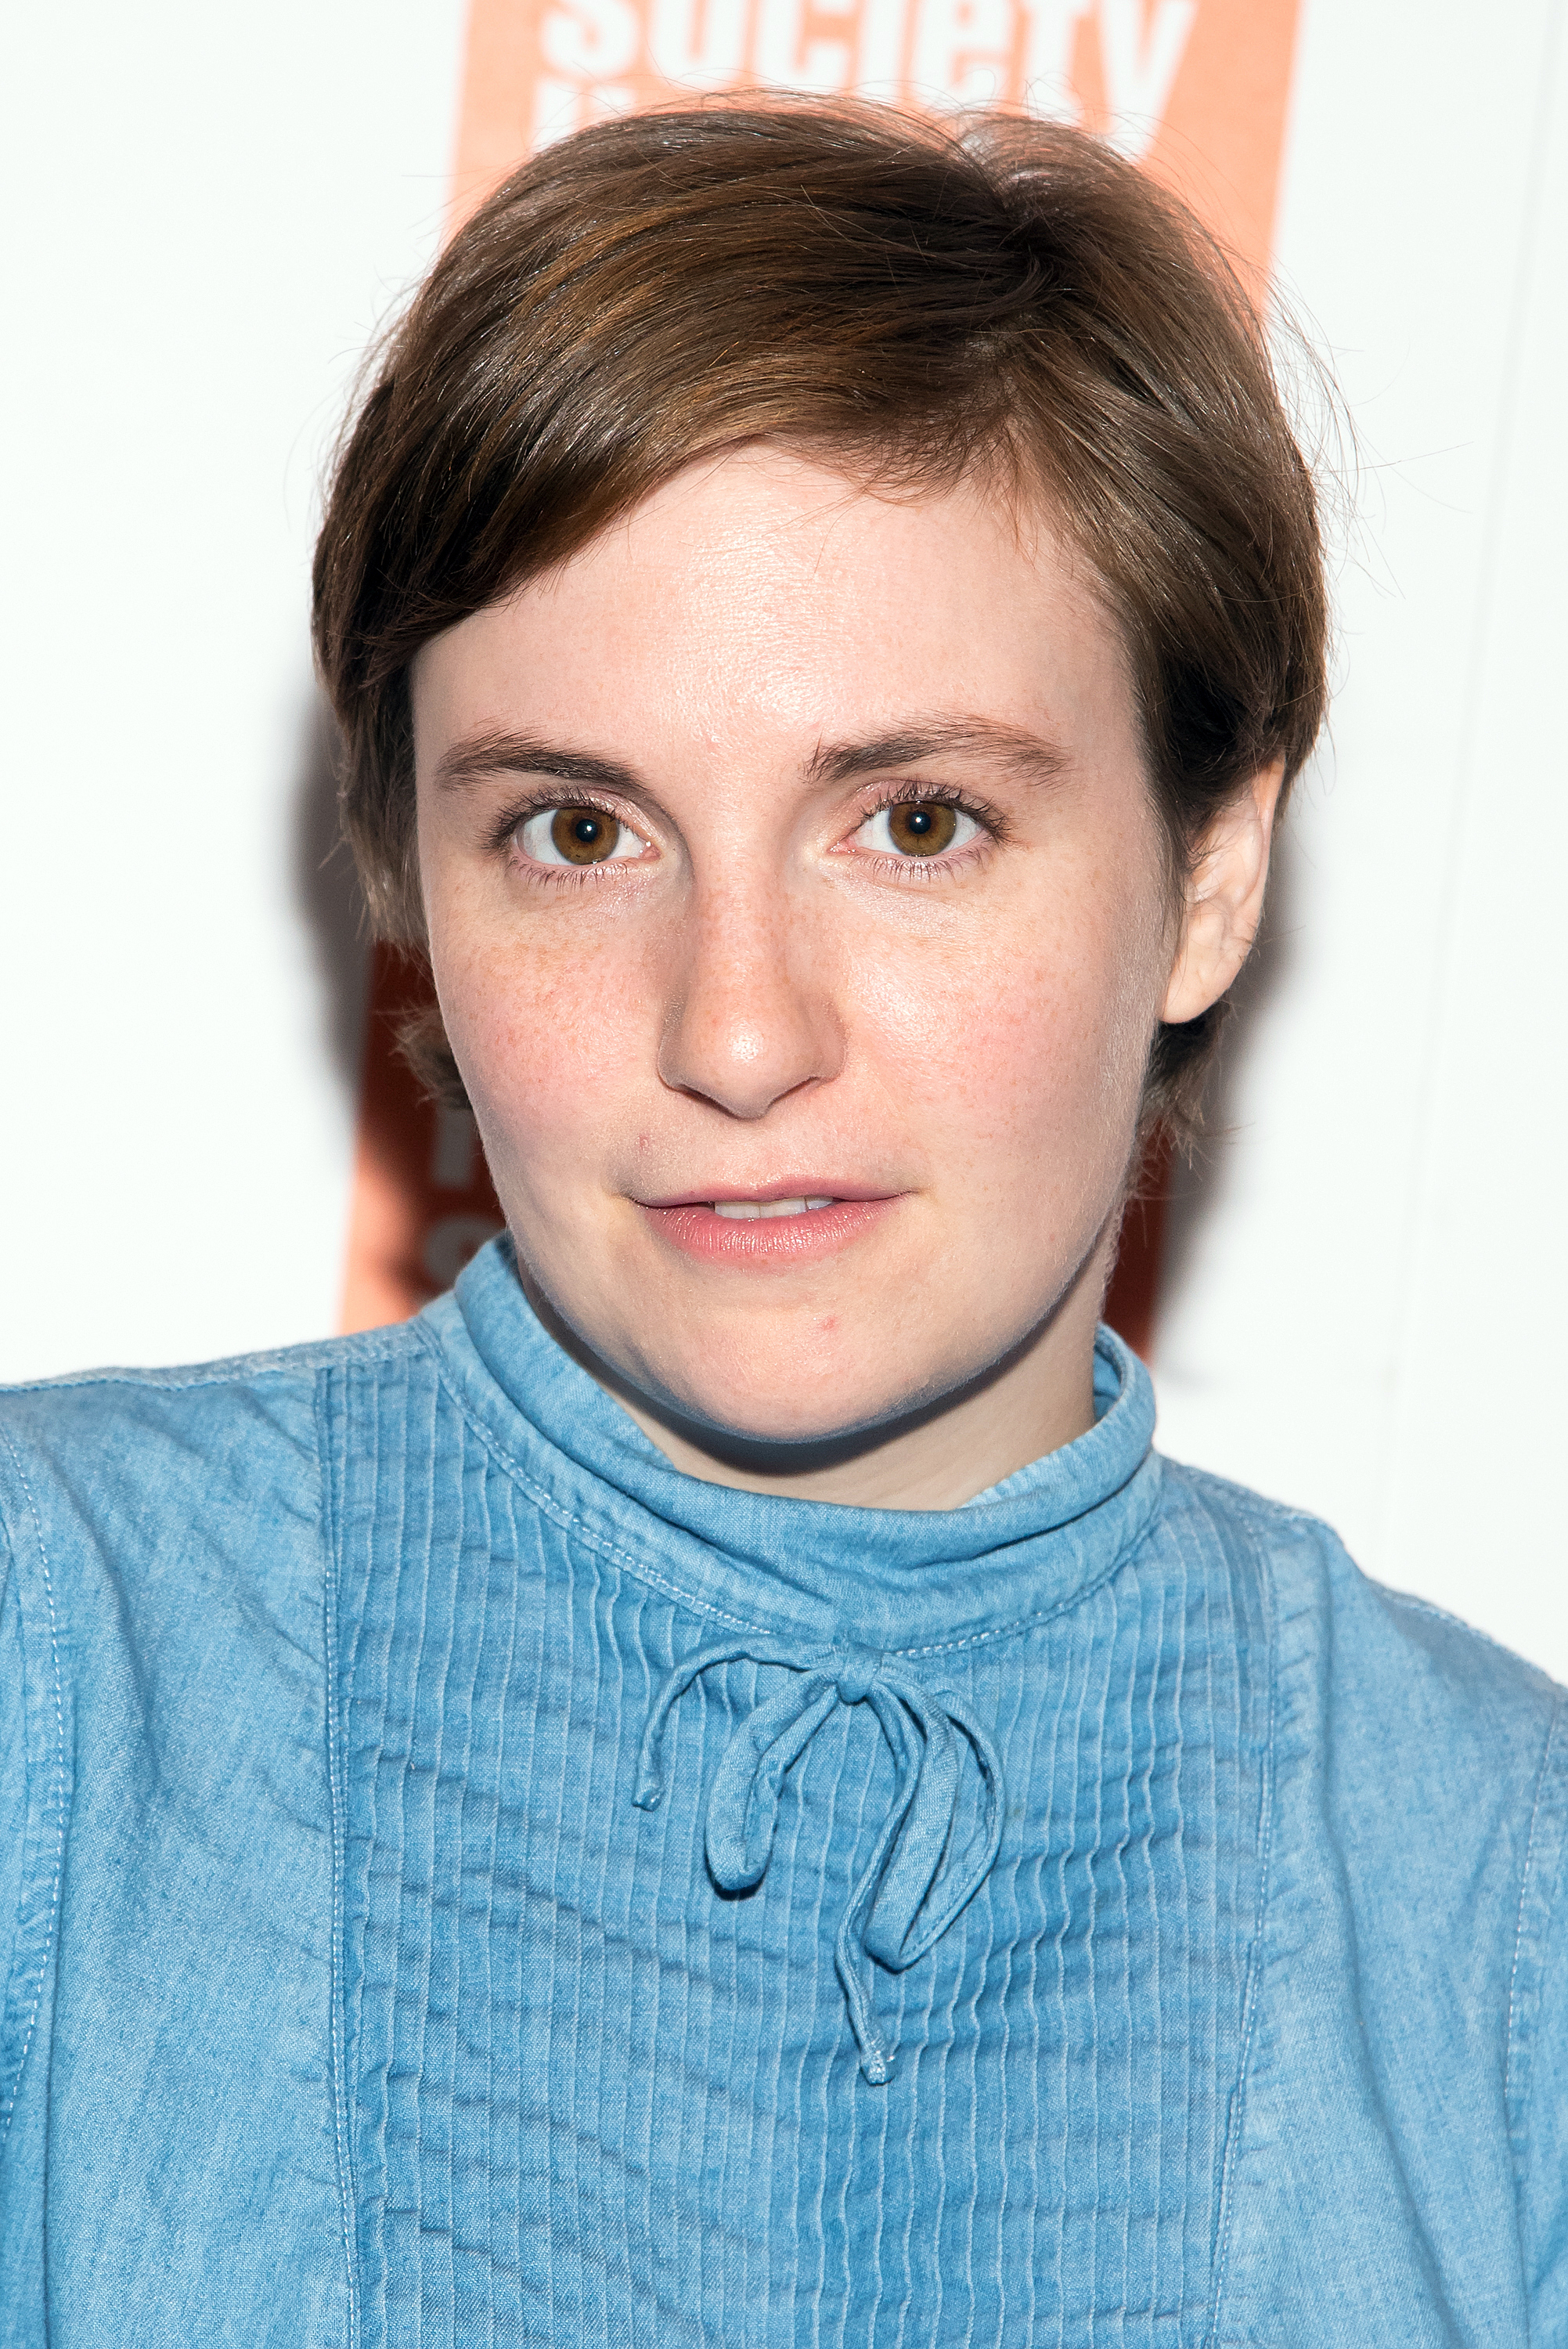 Lena Dunham attends the 2015 Film Society of Lincoln Center Summer Talks with Judd Apatow and Lena Dunham at Walter Reade Theater in New York City on July 13, 2015.